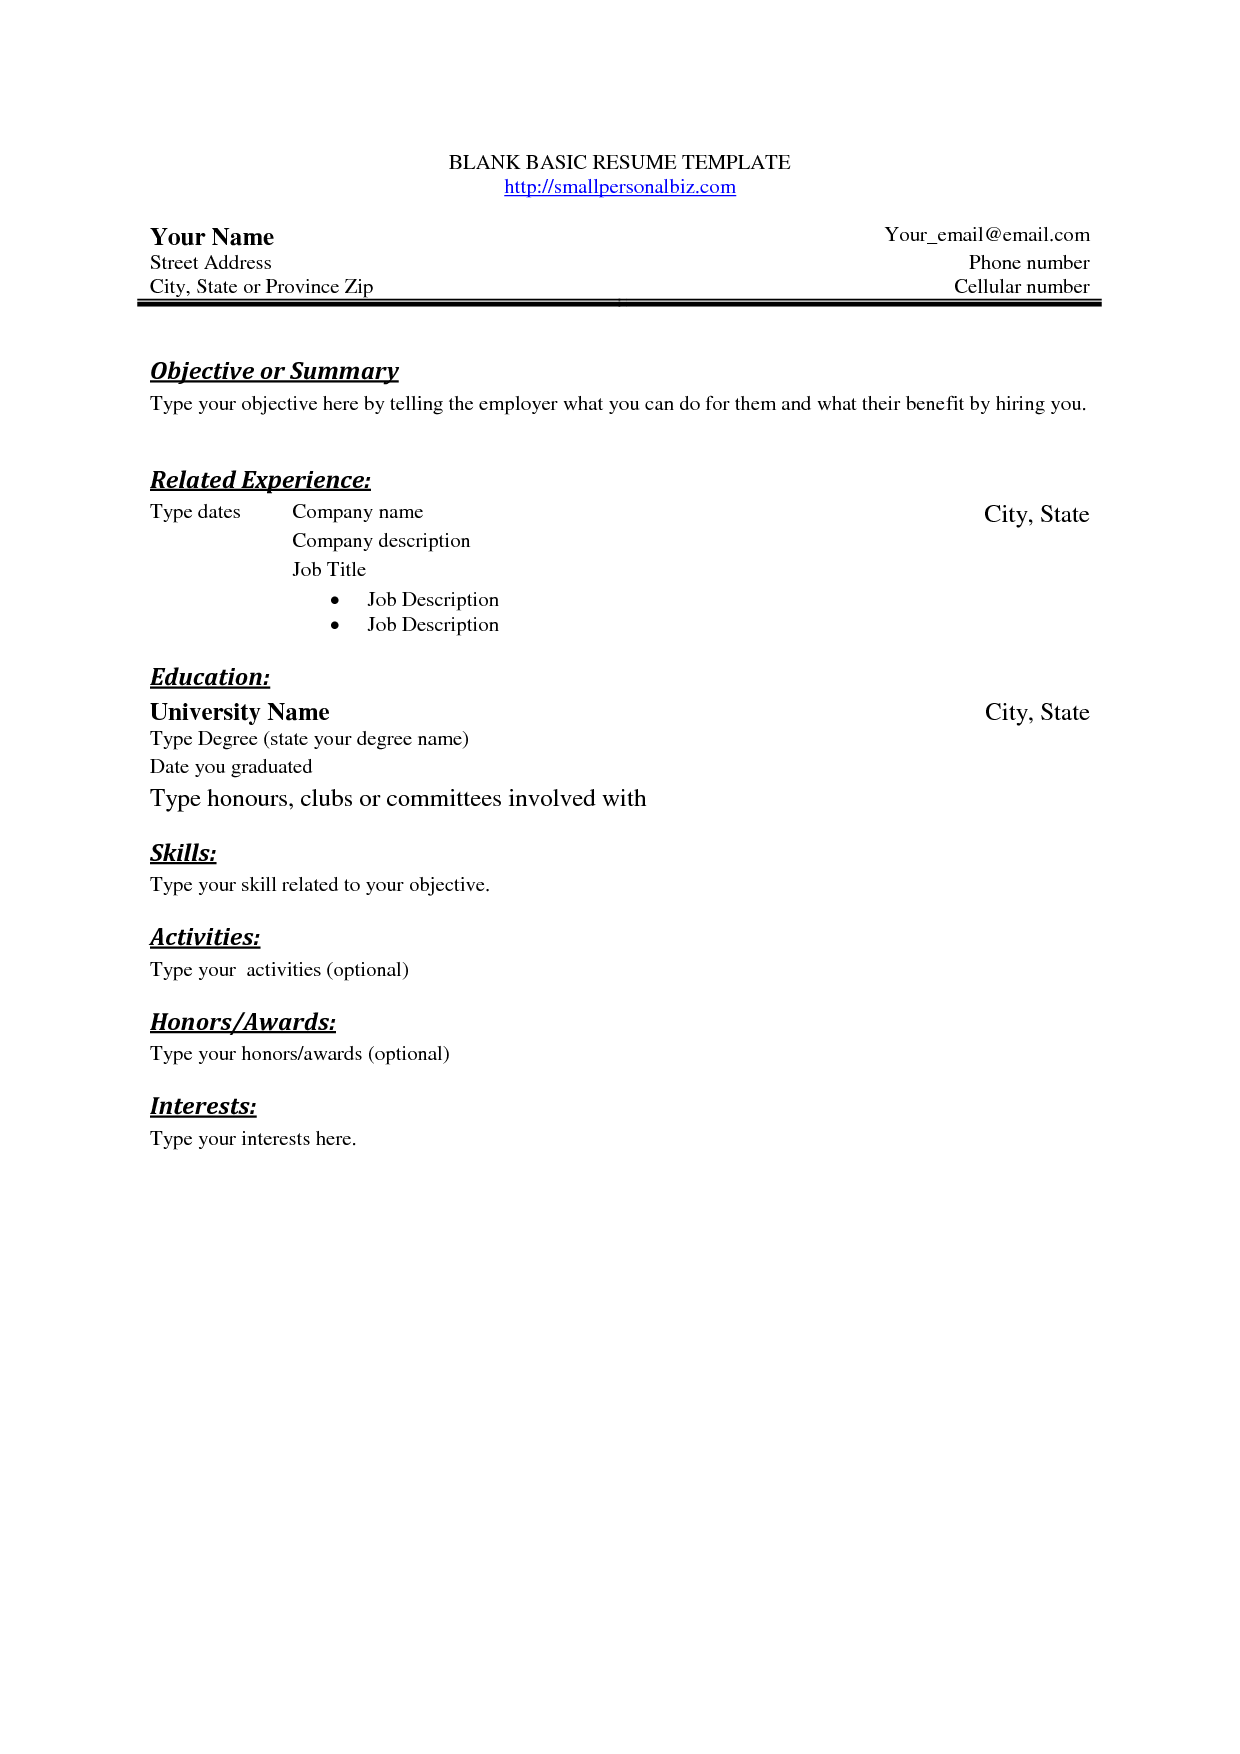 Free Basic Blank Resume Template | Free Basic Sample Resume ...